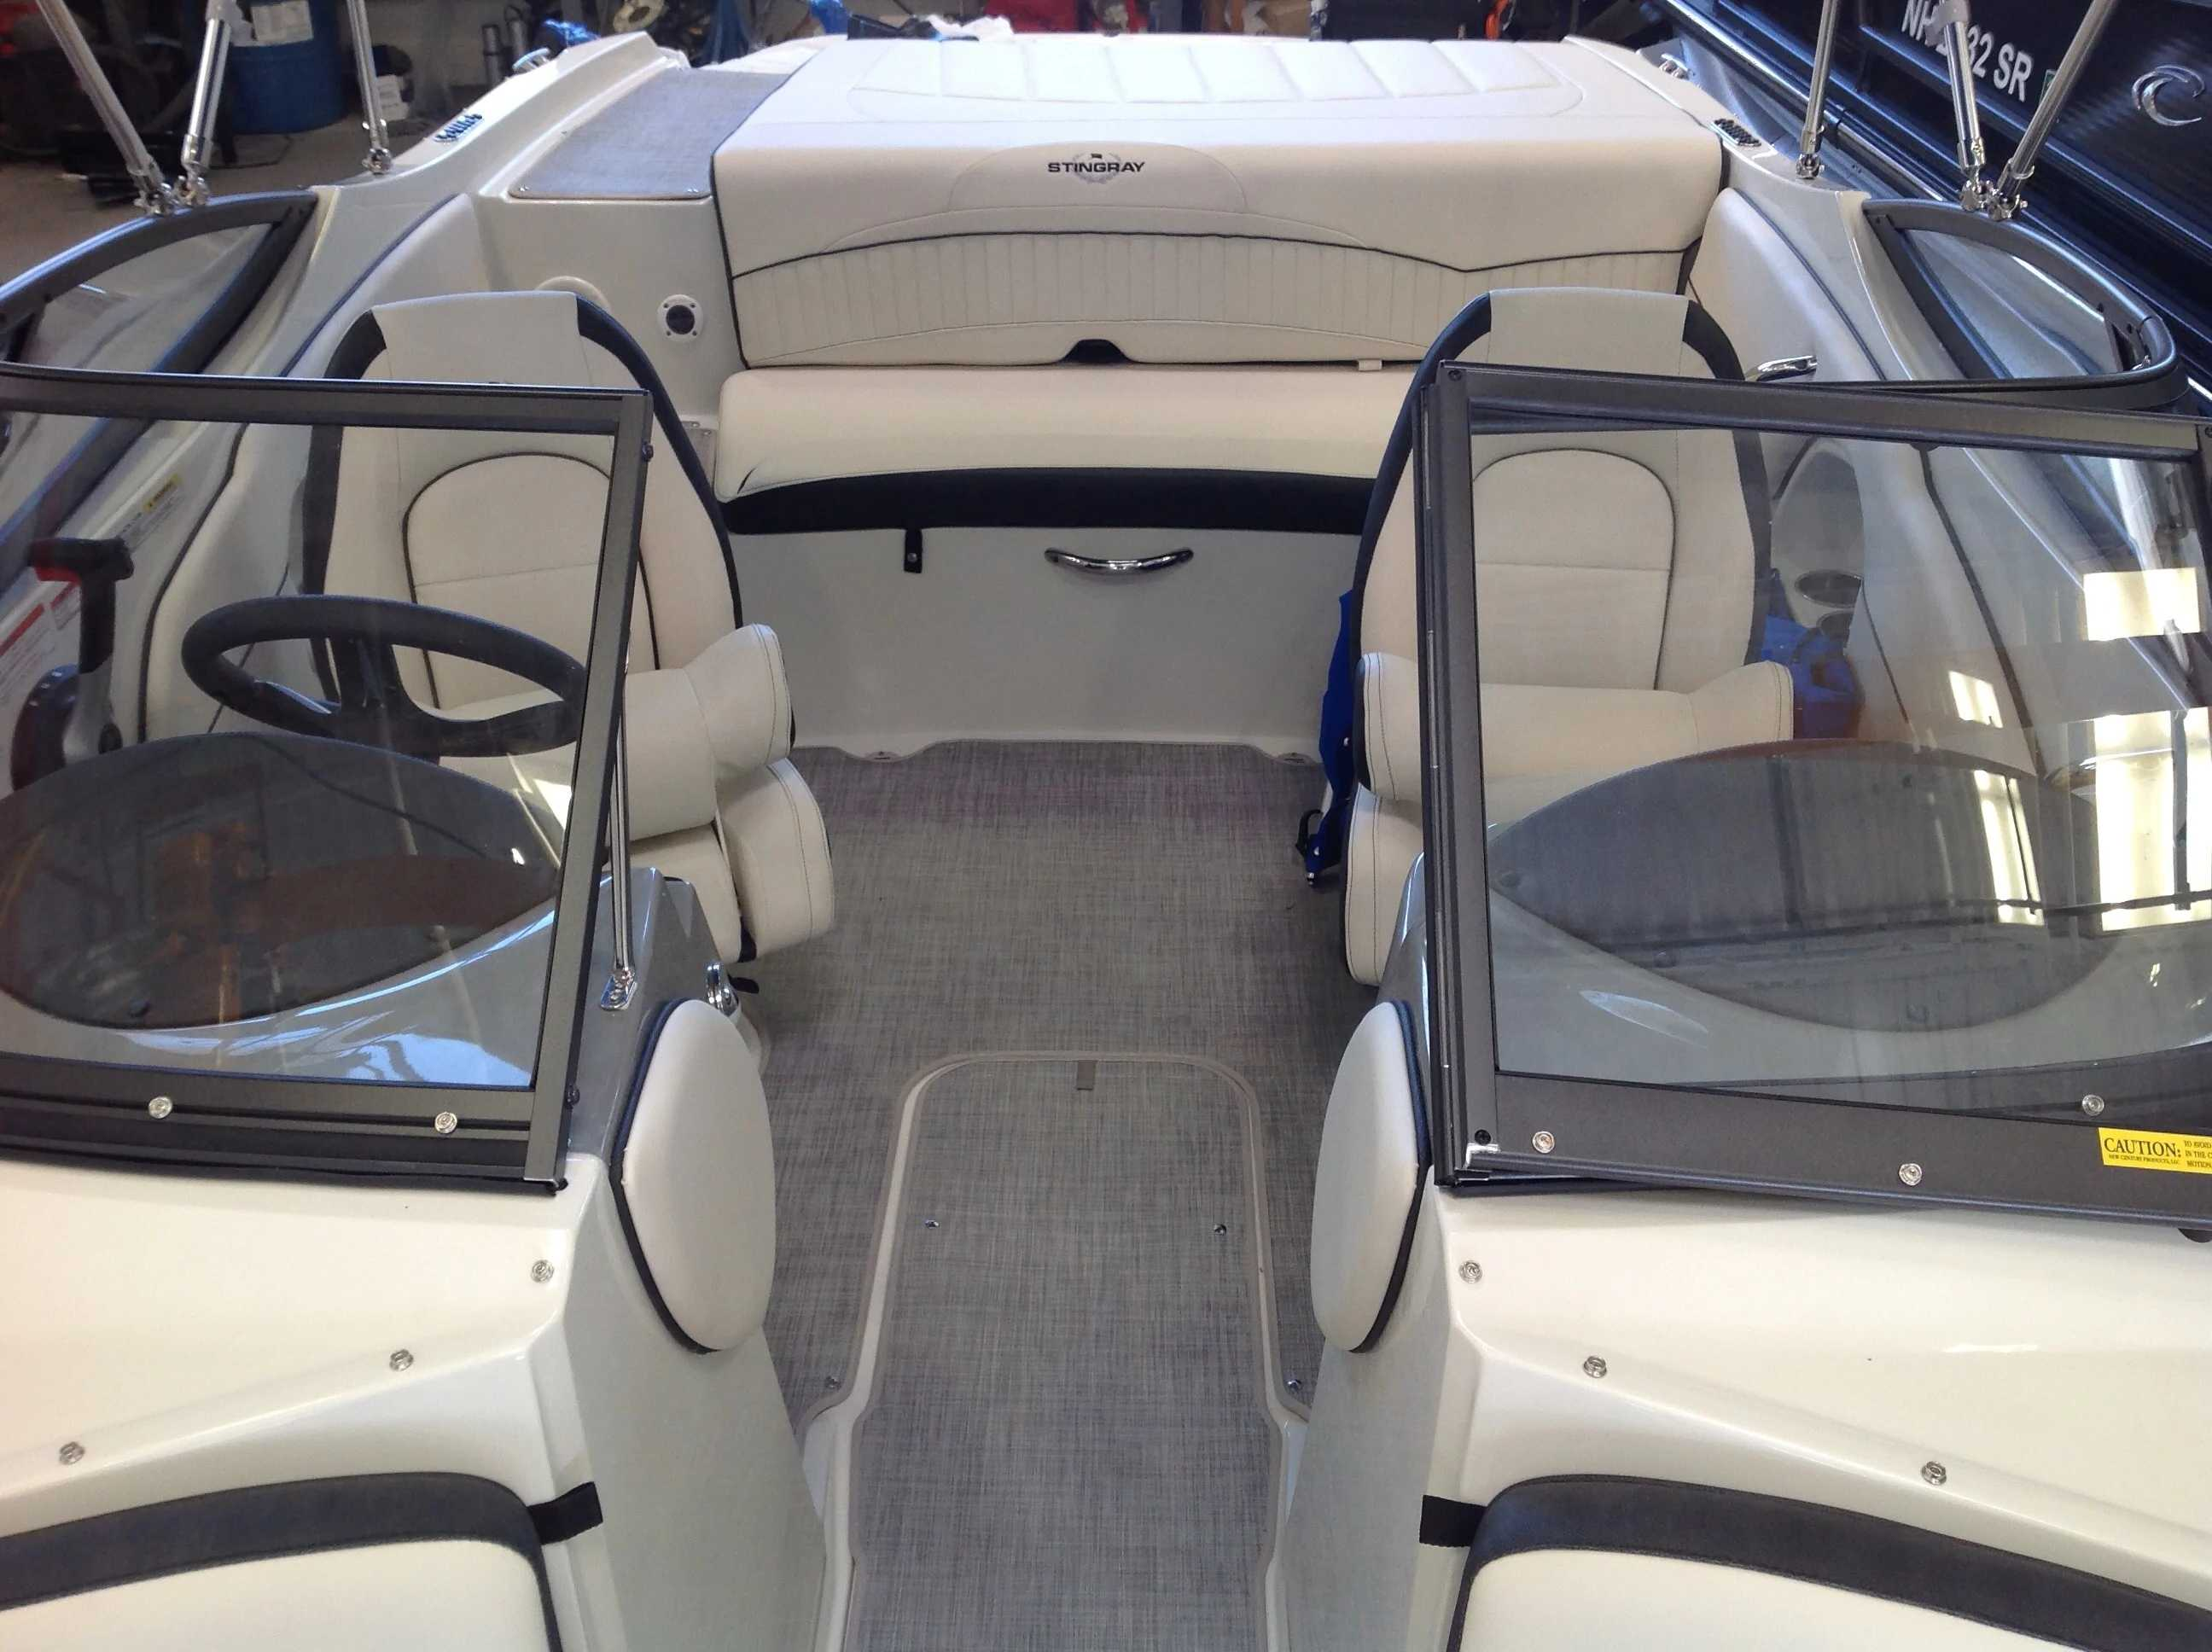 2021 Stingray boat for sale, model of the boat is 198lx & Image # 5 of 14